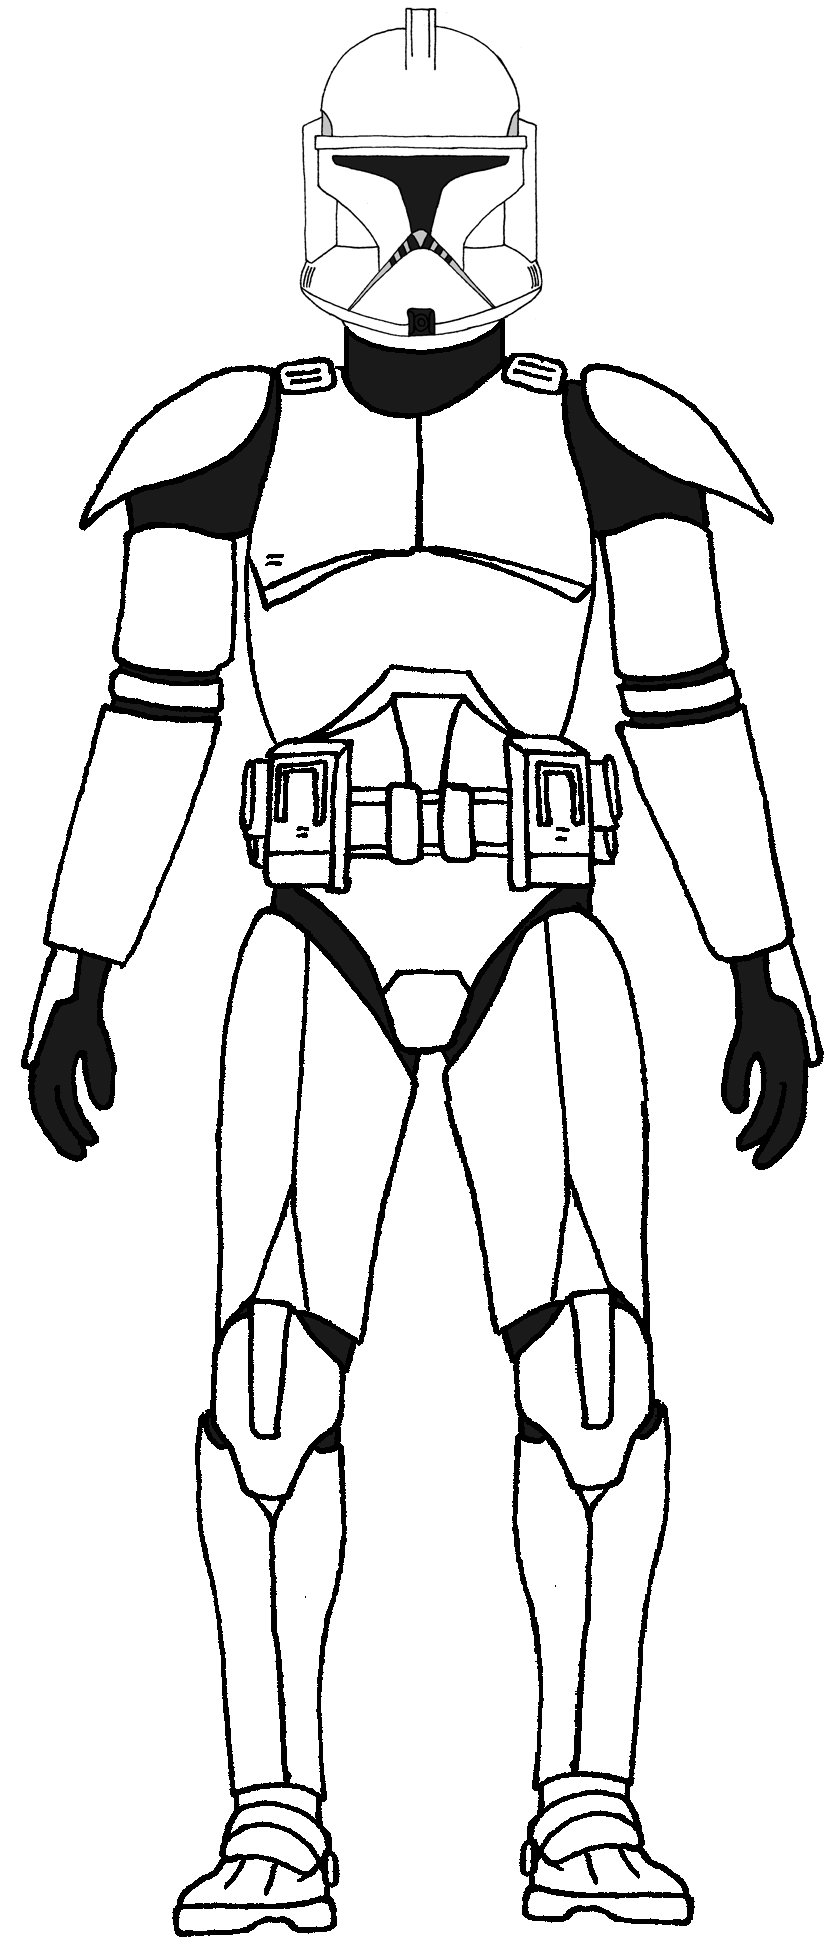 clone-trooper coloring pages 11,printable,coloring pages